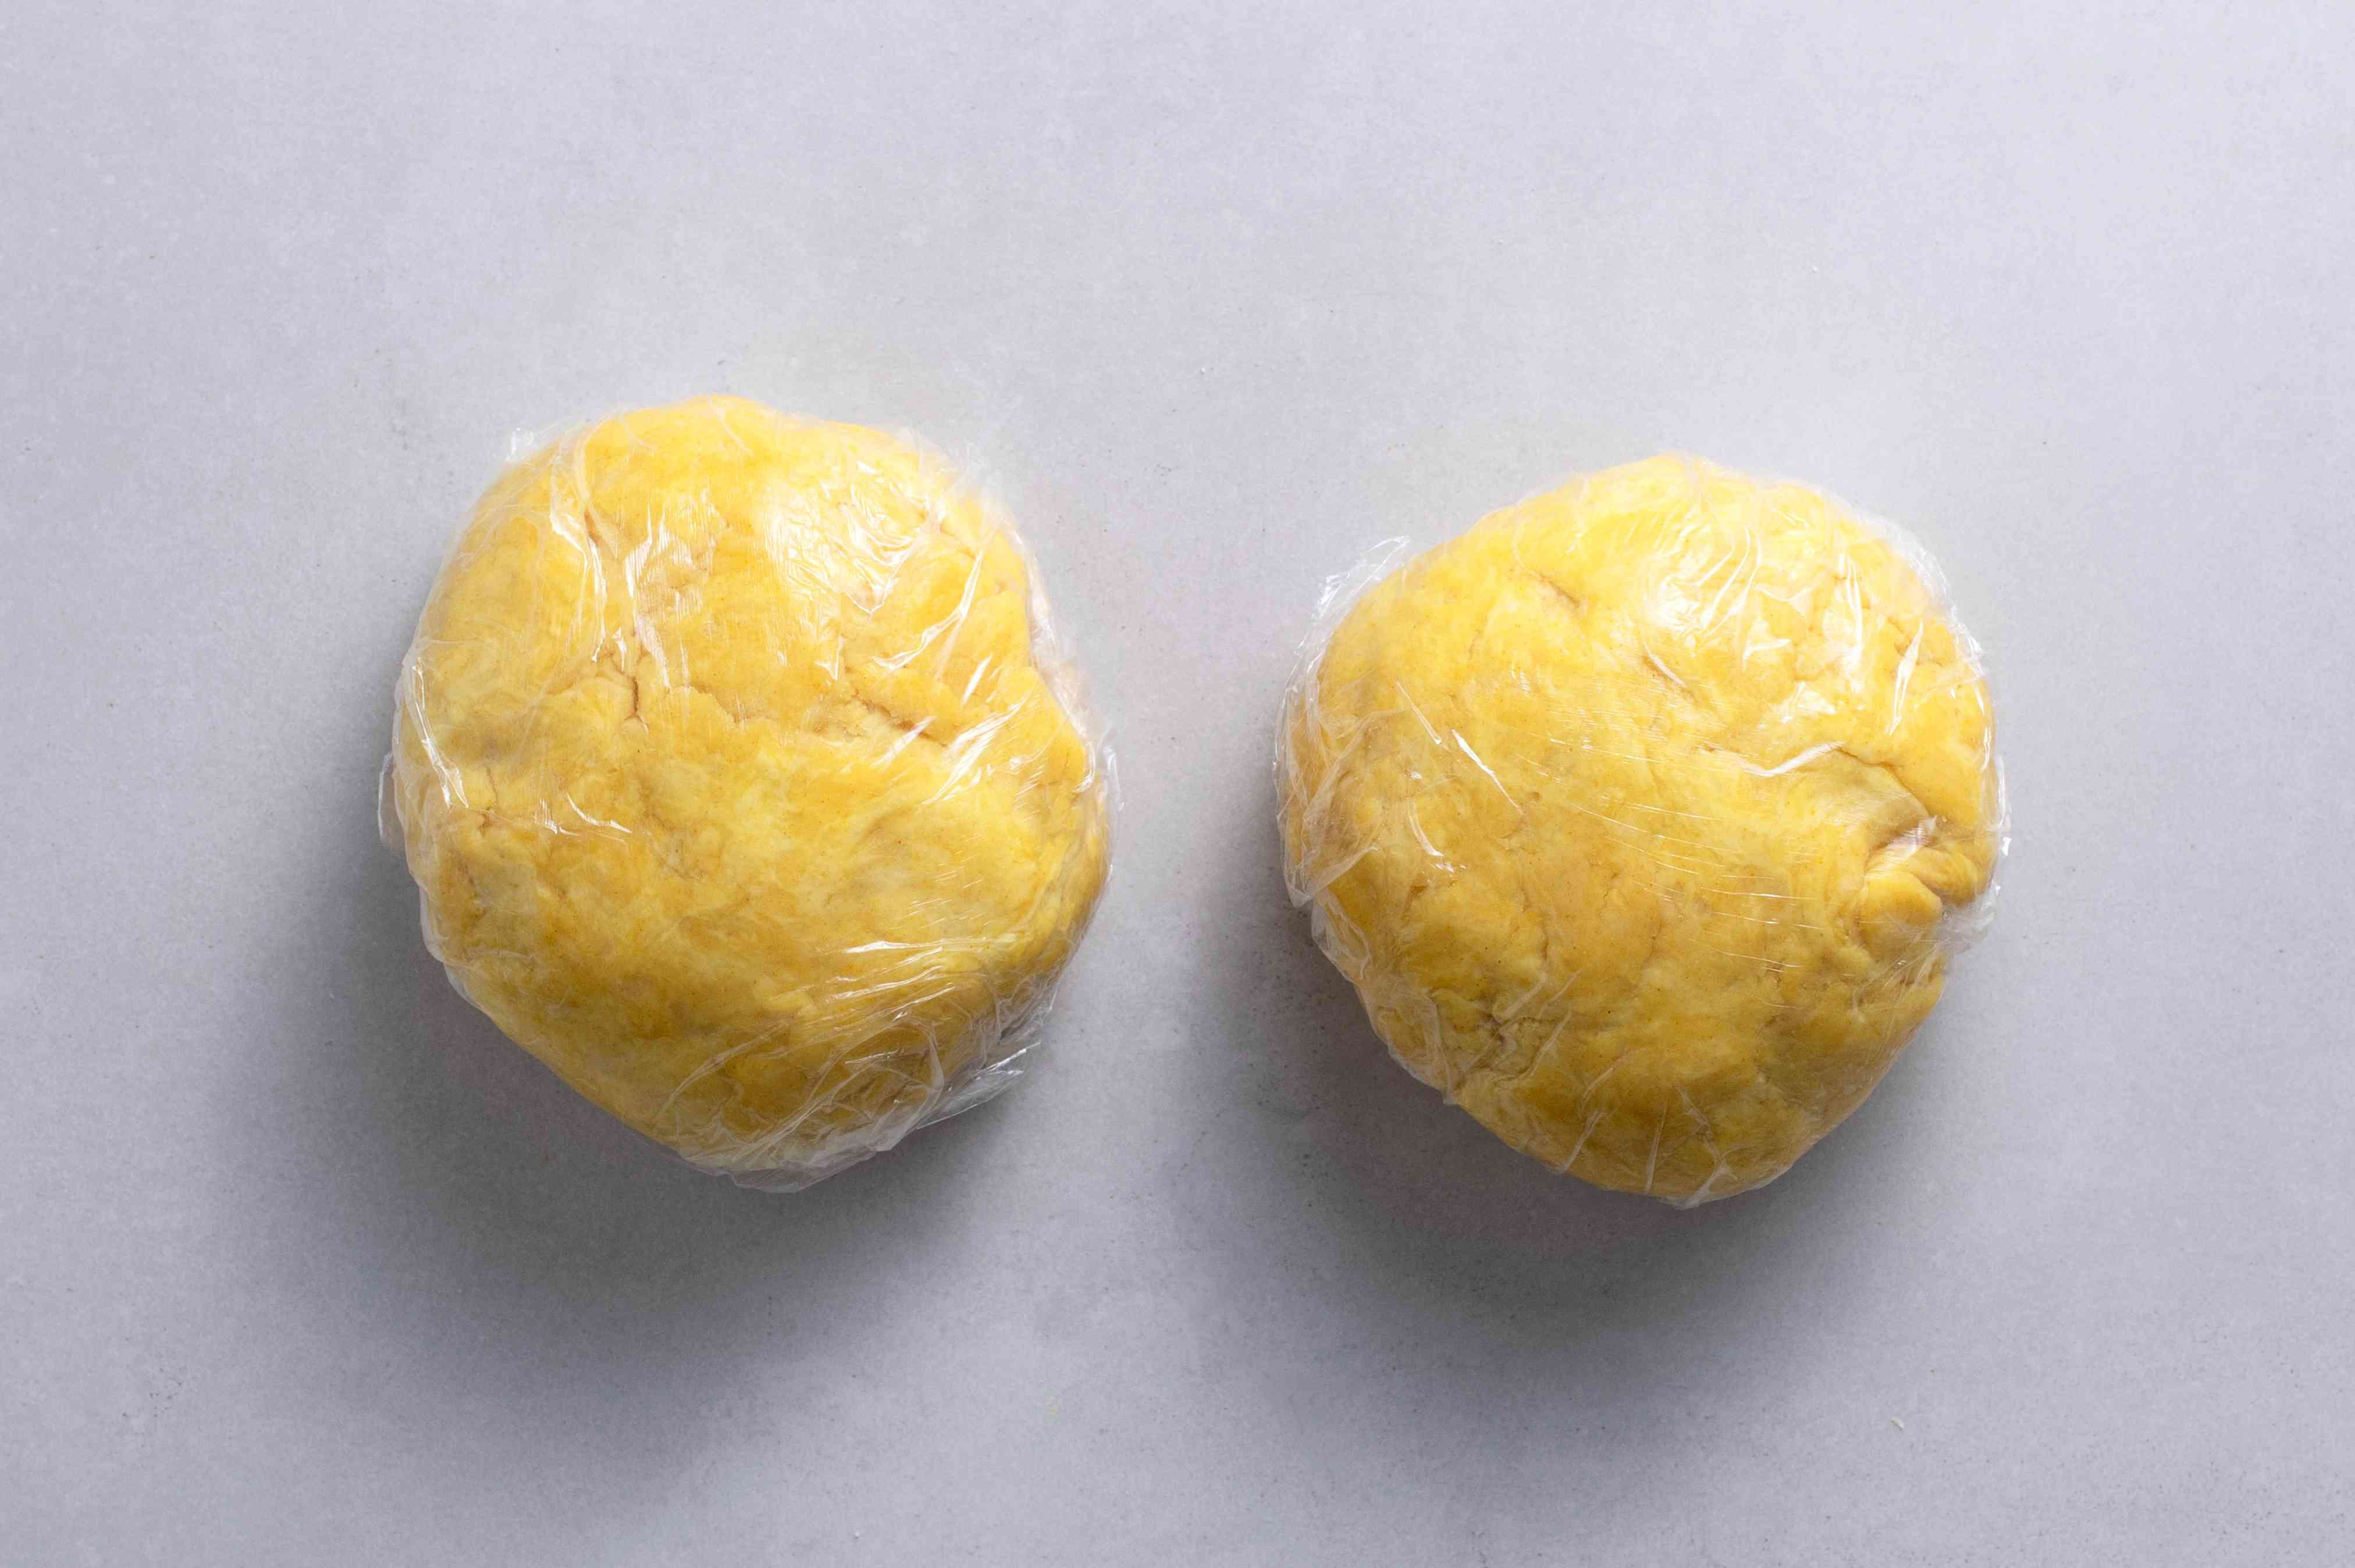 dough balls wrapped in plastic wrap